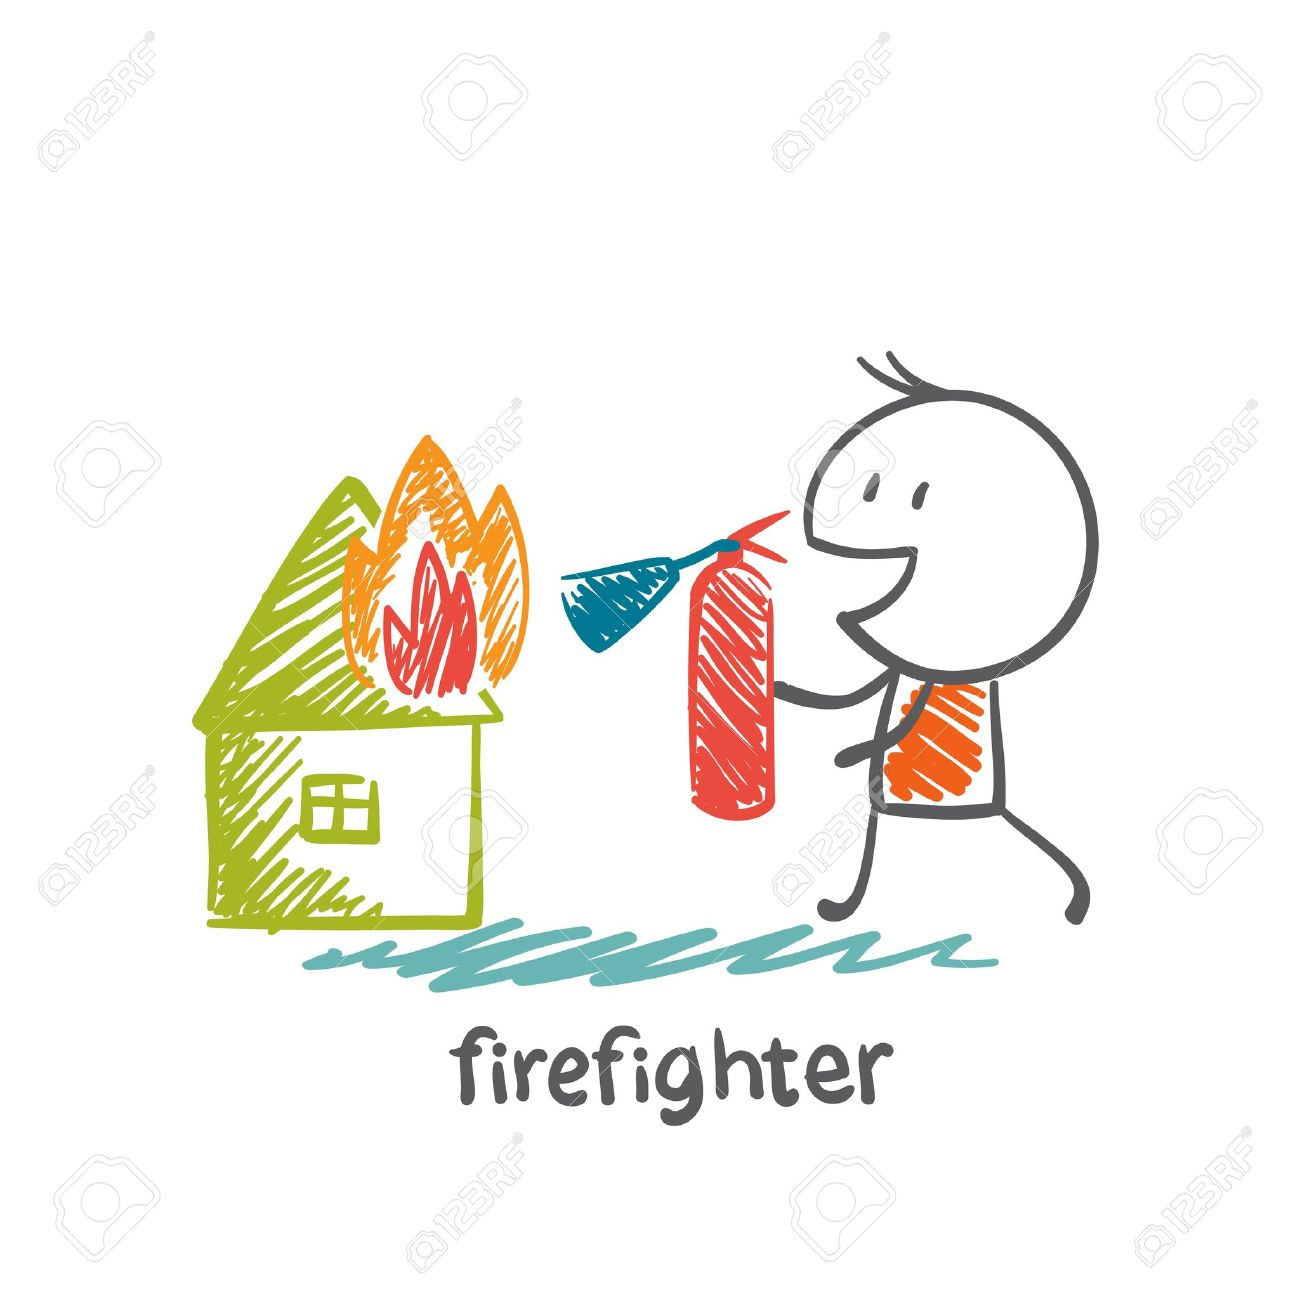 Firefighter Extinguish A Fire Extinguisher House Illustration.